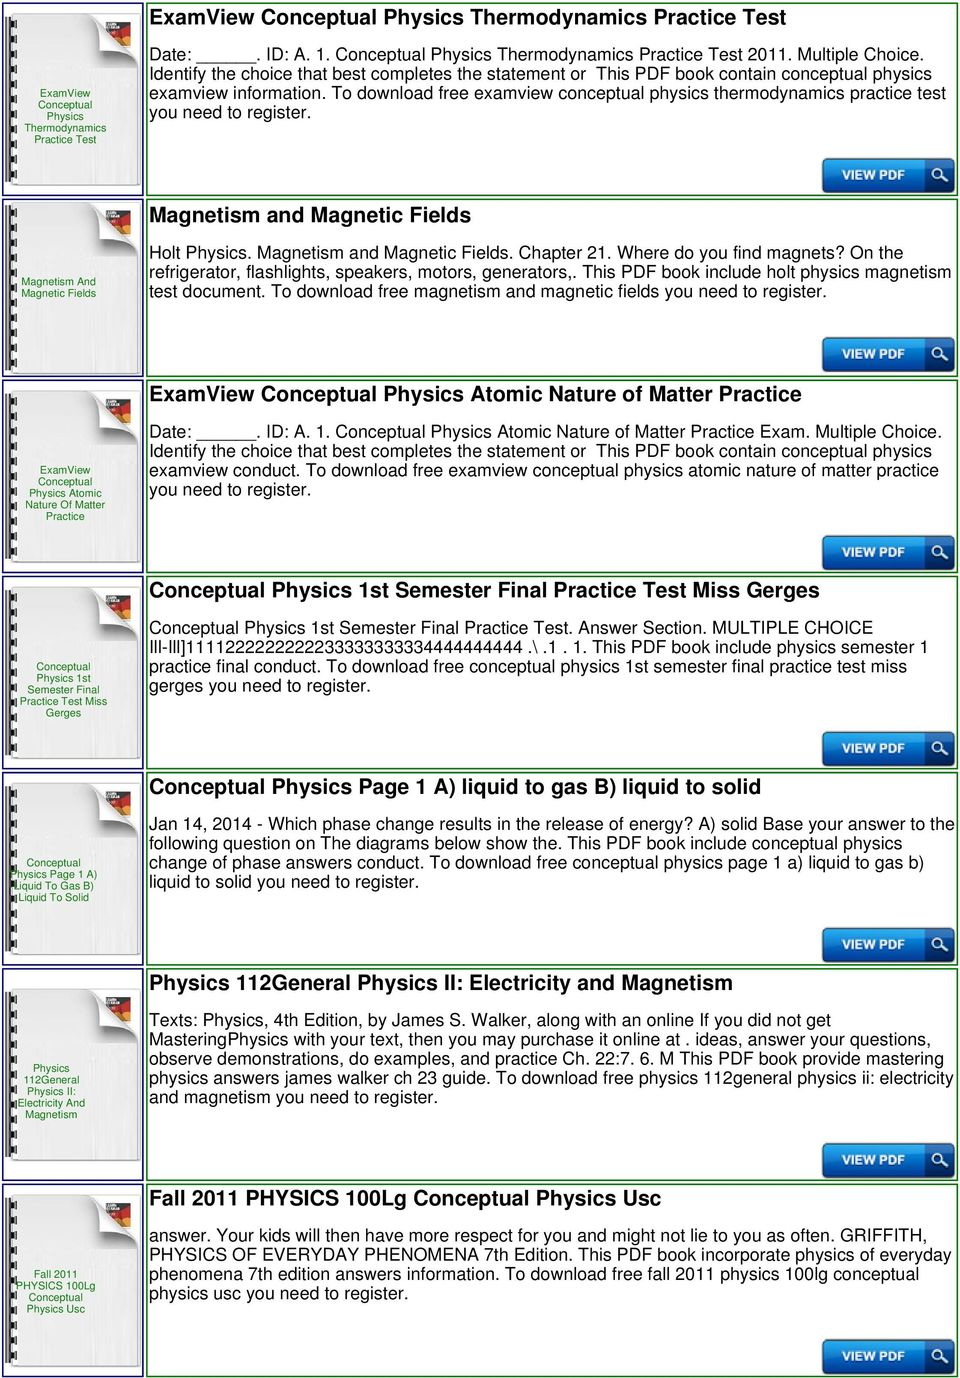 Conceptual physics practice page magnetism magnetic fundamentals pdf to download free examview conceptual physics thermodynamics practice test and magnetic fields and magnetic fields holt fandeluxe Gallery